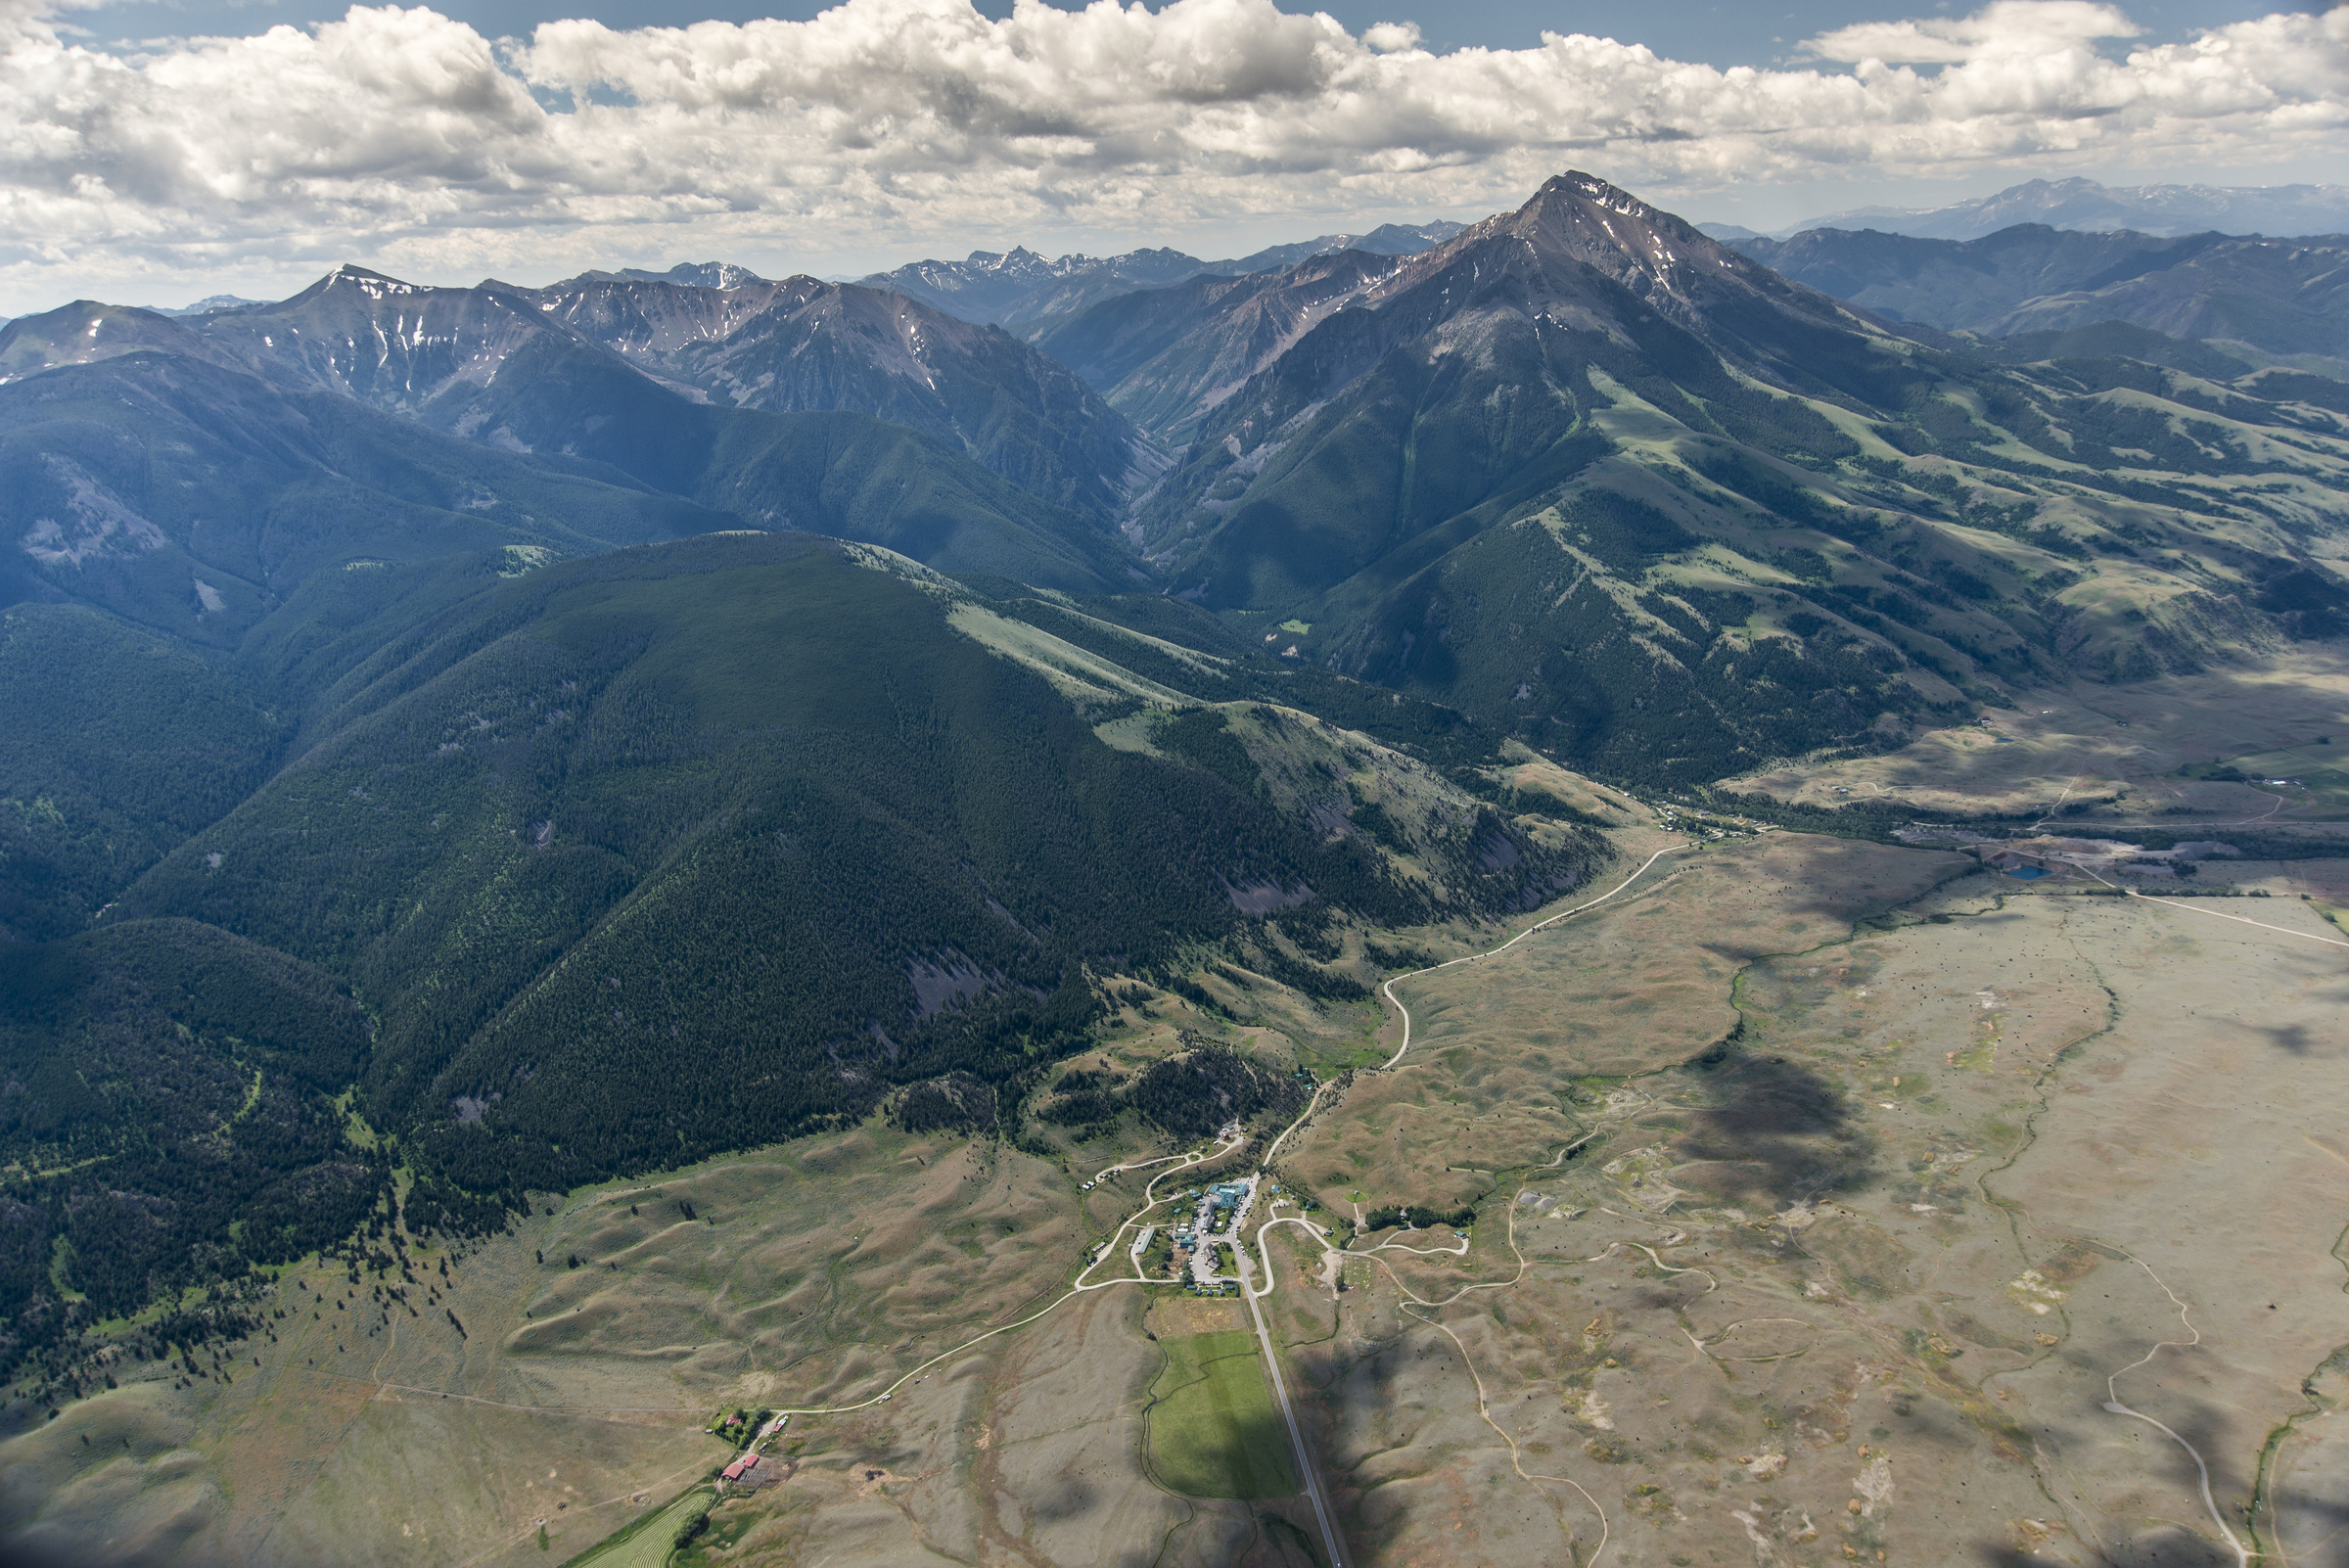 A Canadian mining company is proposing to explore for gold in Emigrant Gulch (the narrow valley to the left of Emigrant Peak - the pointy mountain to the right). Business owners in Montana's Paradise Valley are banding together to demand a timeout on risky gold mines. (Photo William Campbell.)